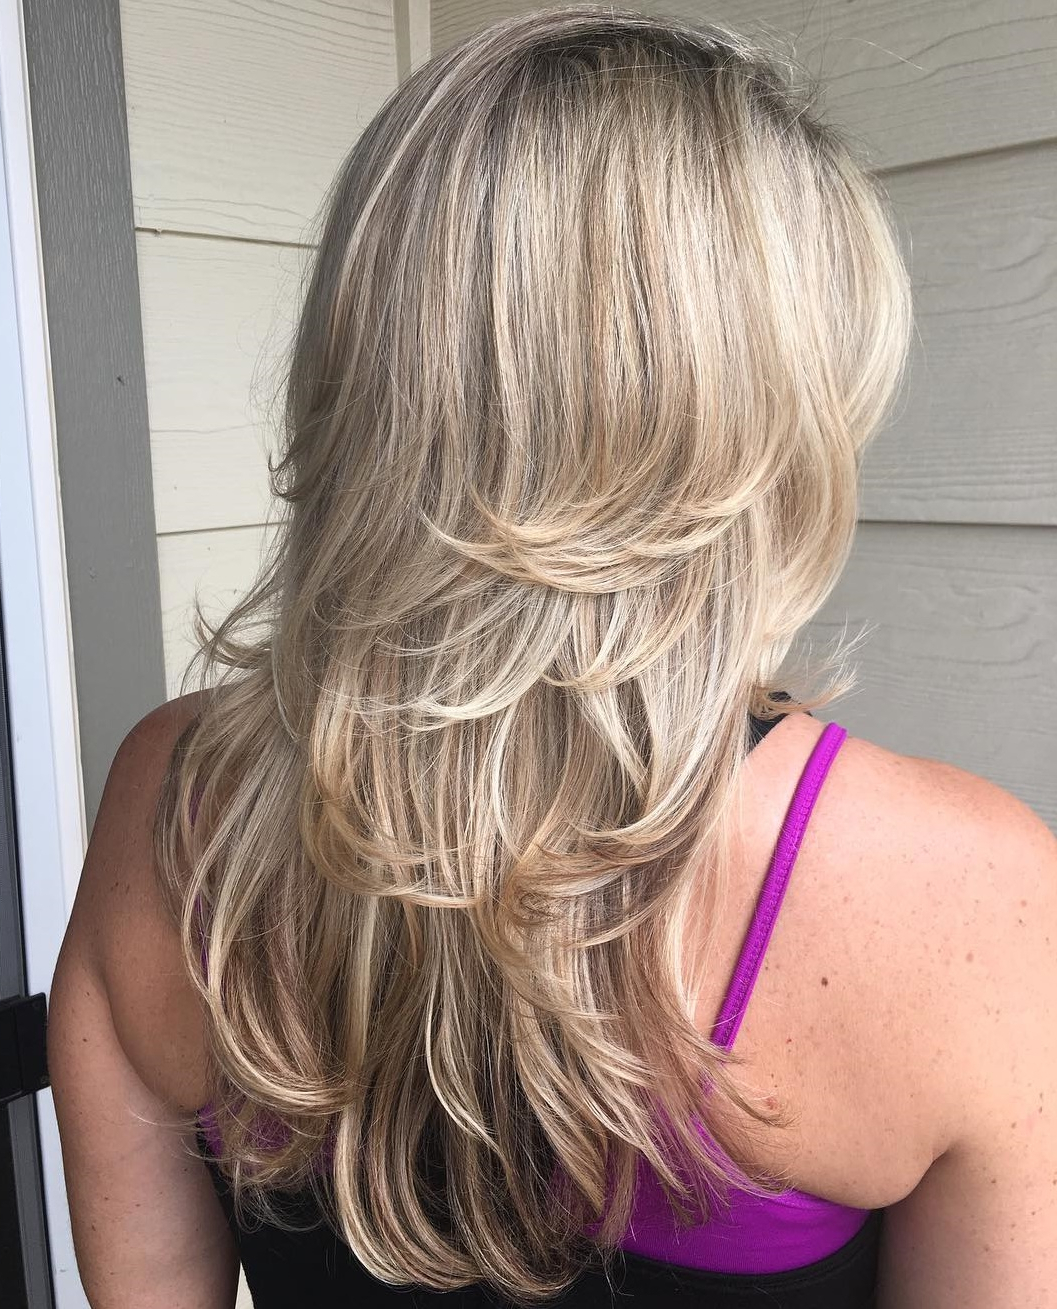 Popular Two Layer Razored Blonde Hairstyles Inside How To Nail Layered Hair In 2019: Full Guide To Lengths And (View 11 of 20)